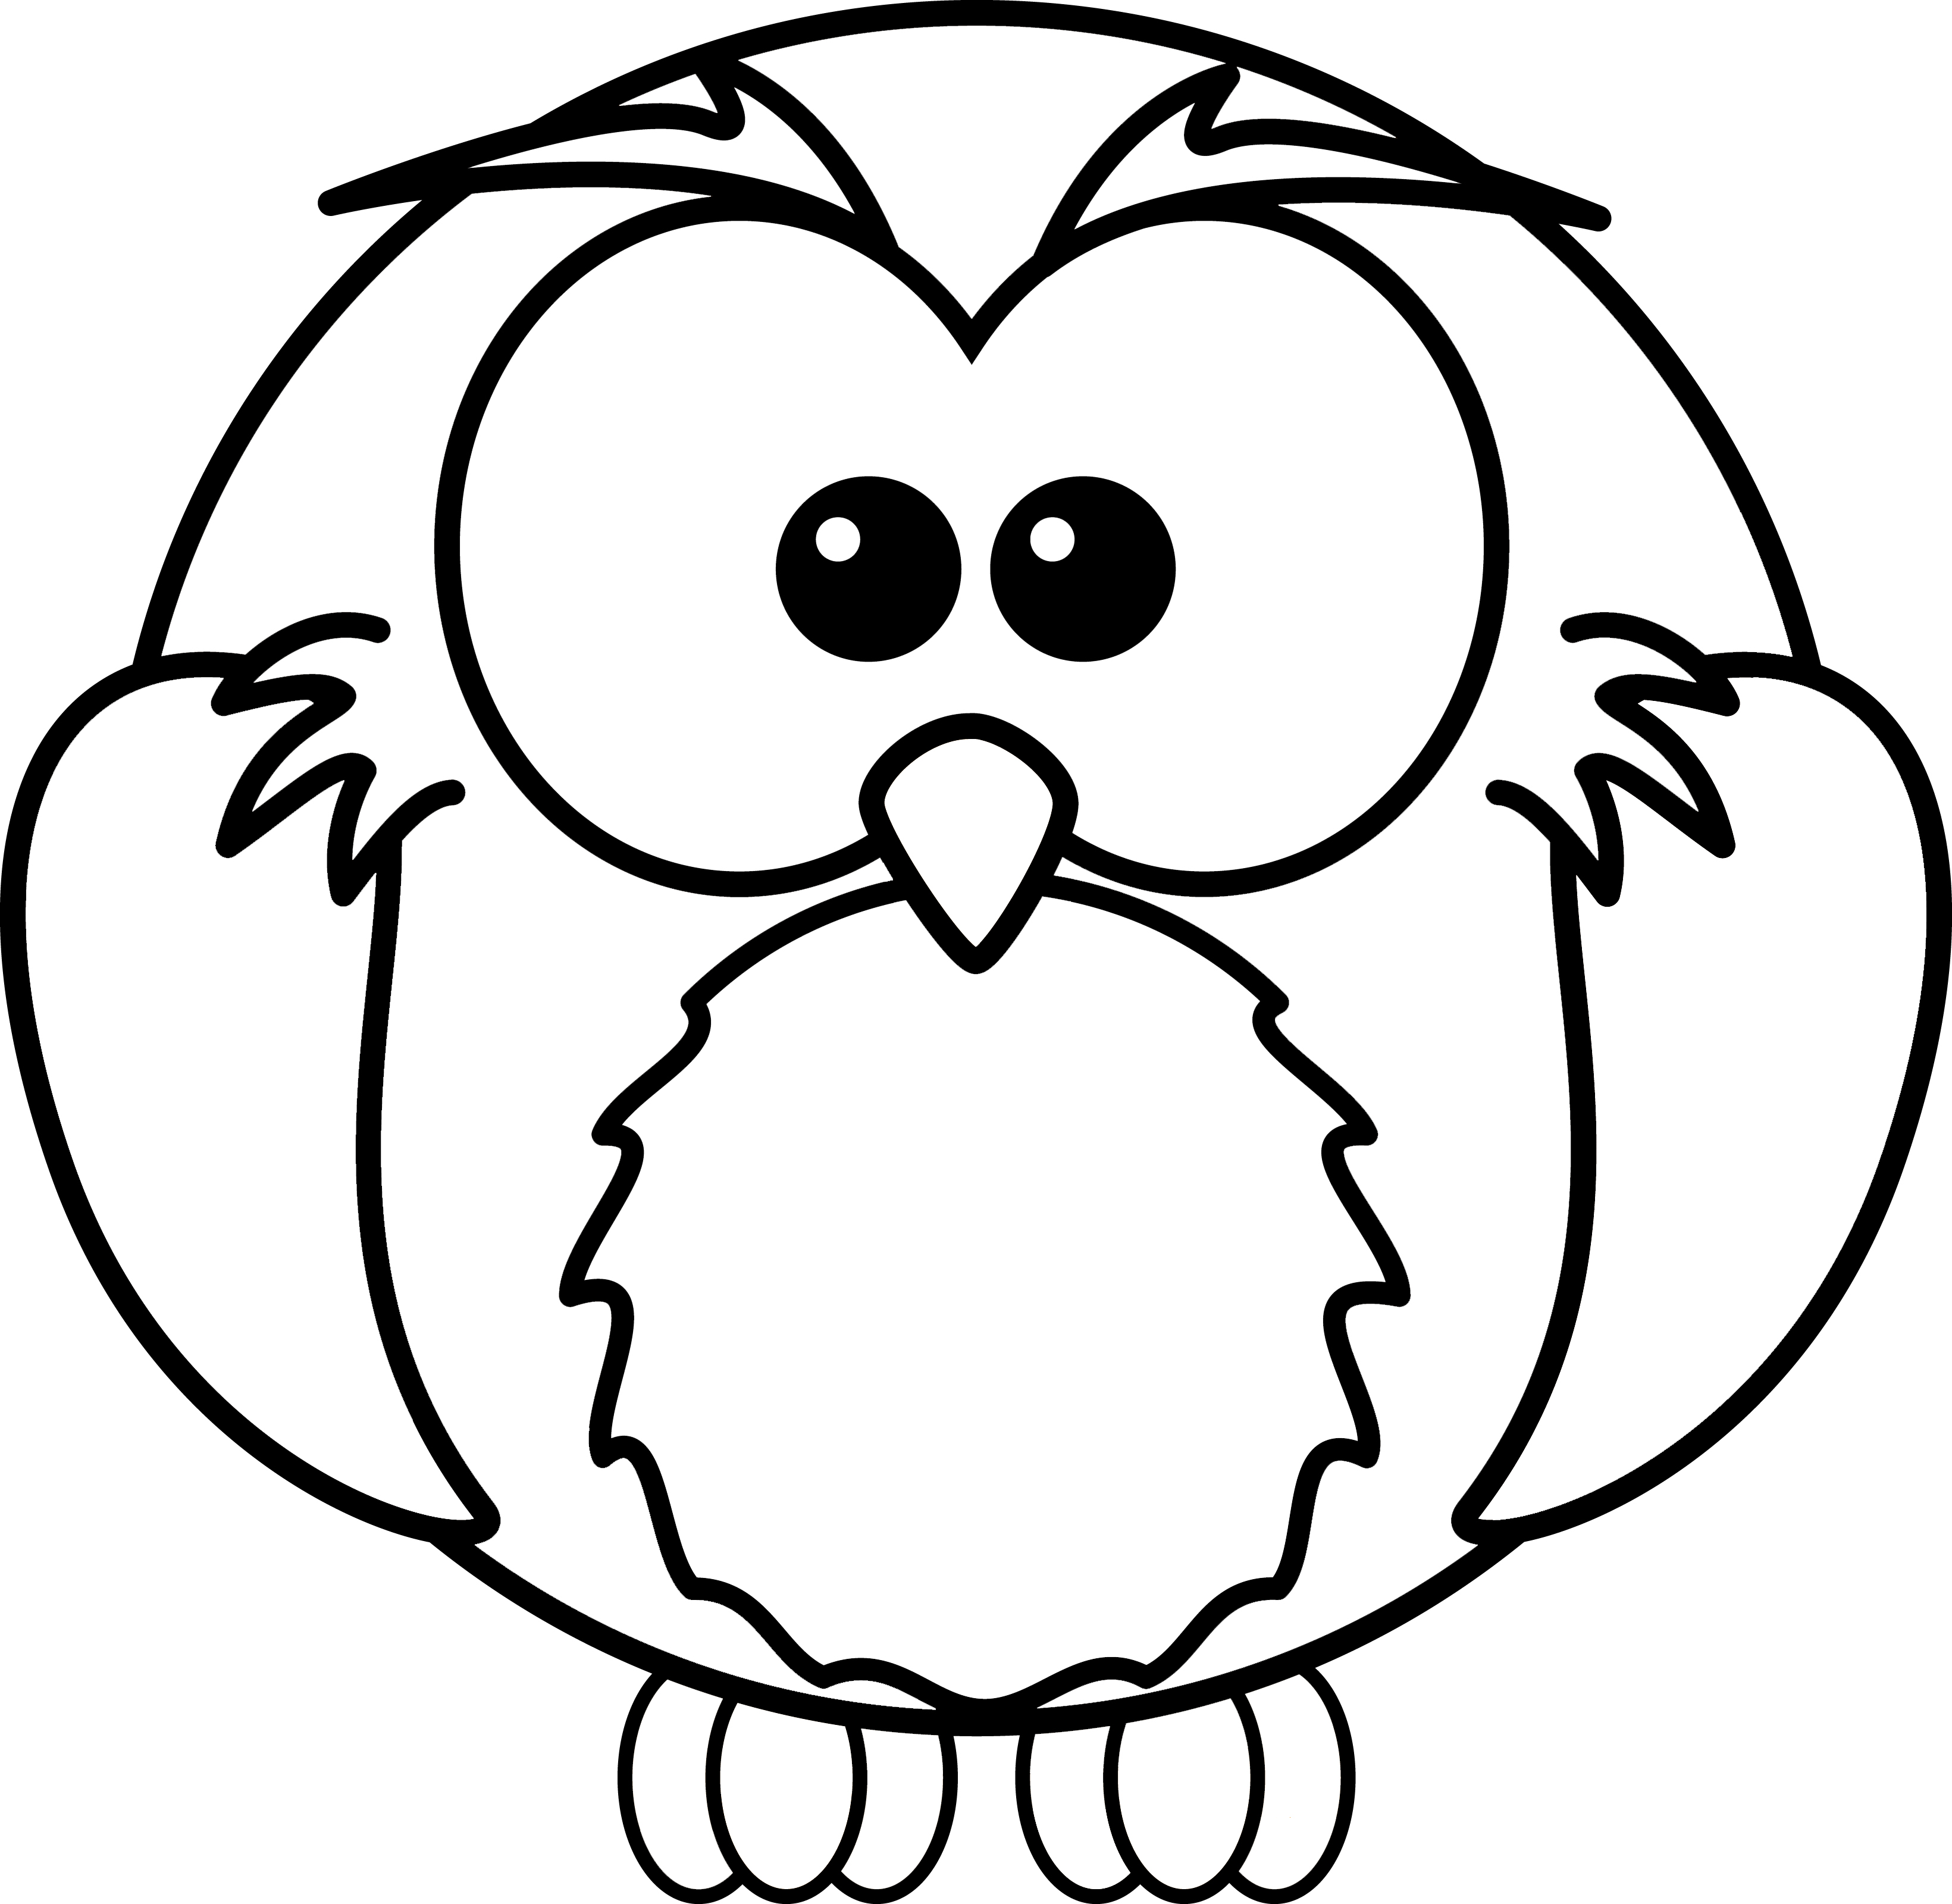 3281x3200 For Kid Clip Art Coloring Pages 21 For Coloring Online With Clip